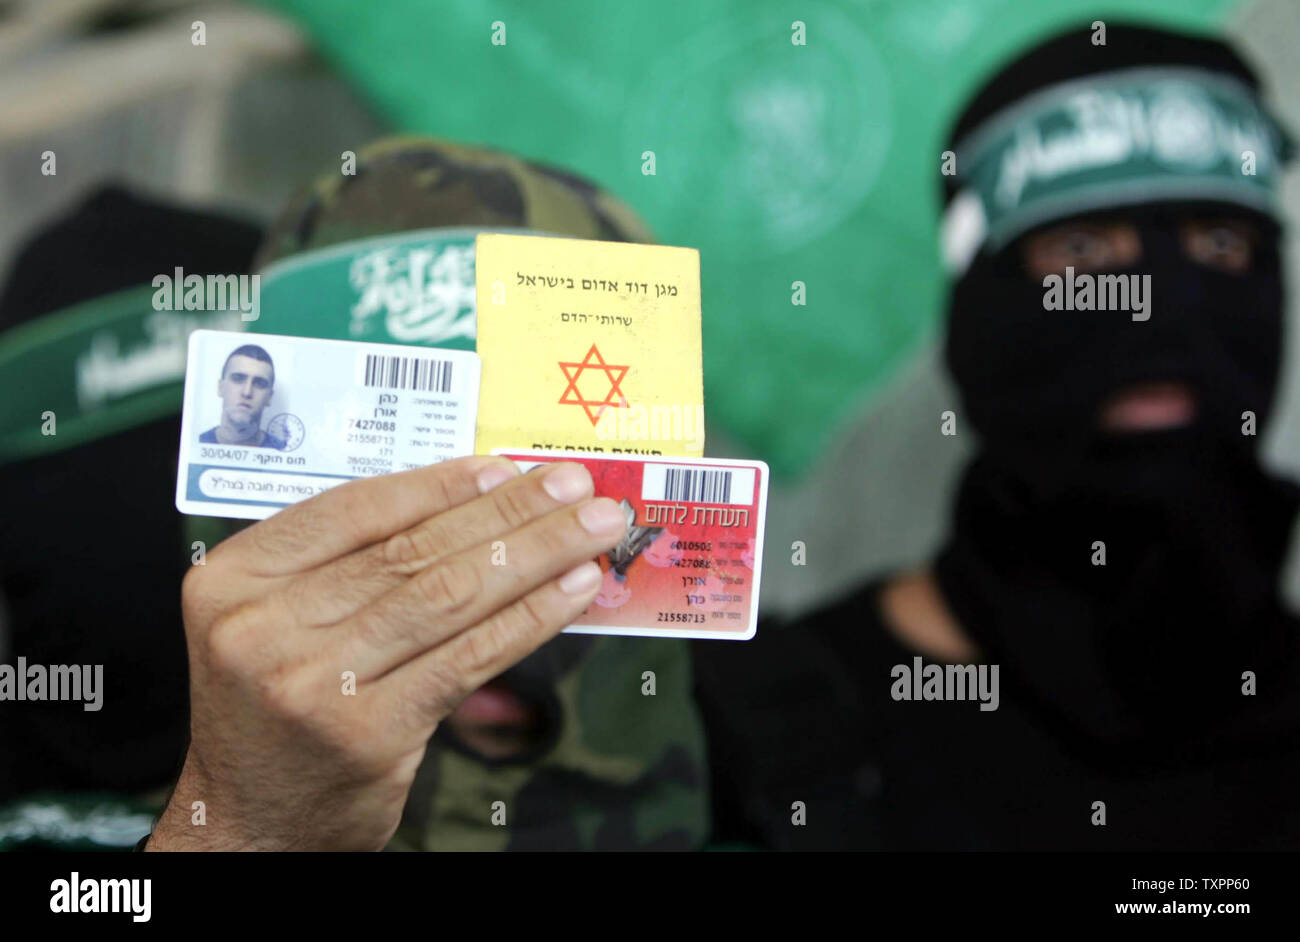 Abu Obayda, the spokesman of the military wing of Hamas the Ezz El-Deen Al-Qassam Brigades, displays the ID cards of Israeli soldiers left them behind when Israeli tanks withdrew in Beit Lahia, northern Gaza, on July 8, 2006. According to sources Israel has pulled out its forces from the town of Beit Lahia following the death of 35 Palestinians and one Israeli soldier since Israel launched a large scale military operation in Gaza this week aimed at preventing rocket attacks and securing the release of a captured soldier.  (UPI Photo/Ismael Mohamad) - Stock Image